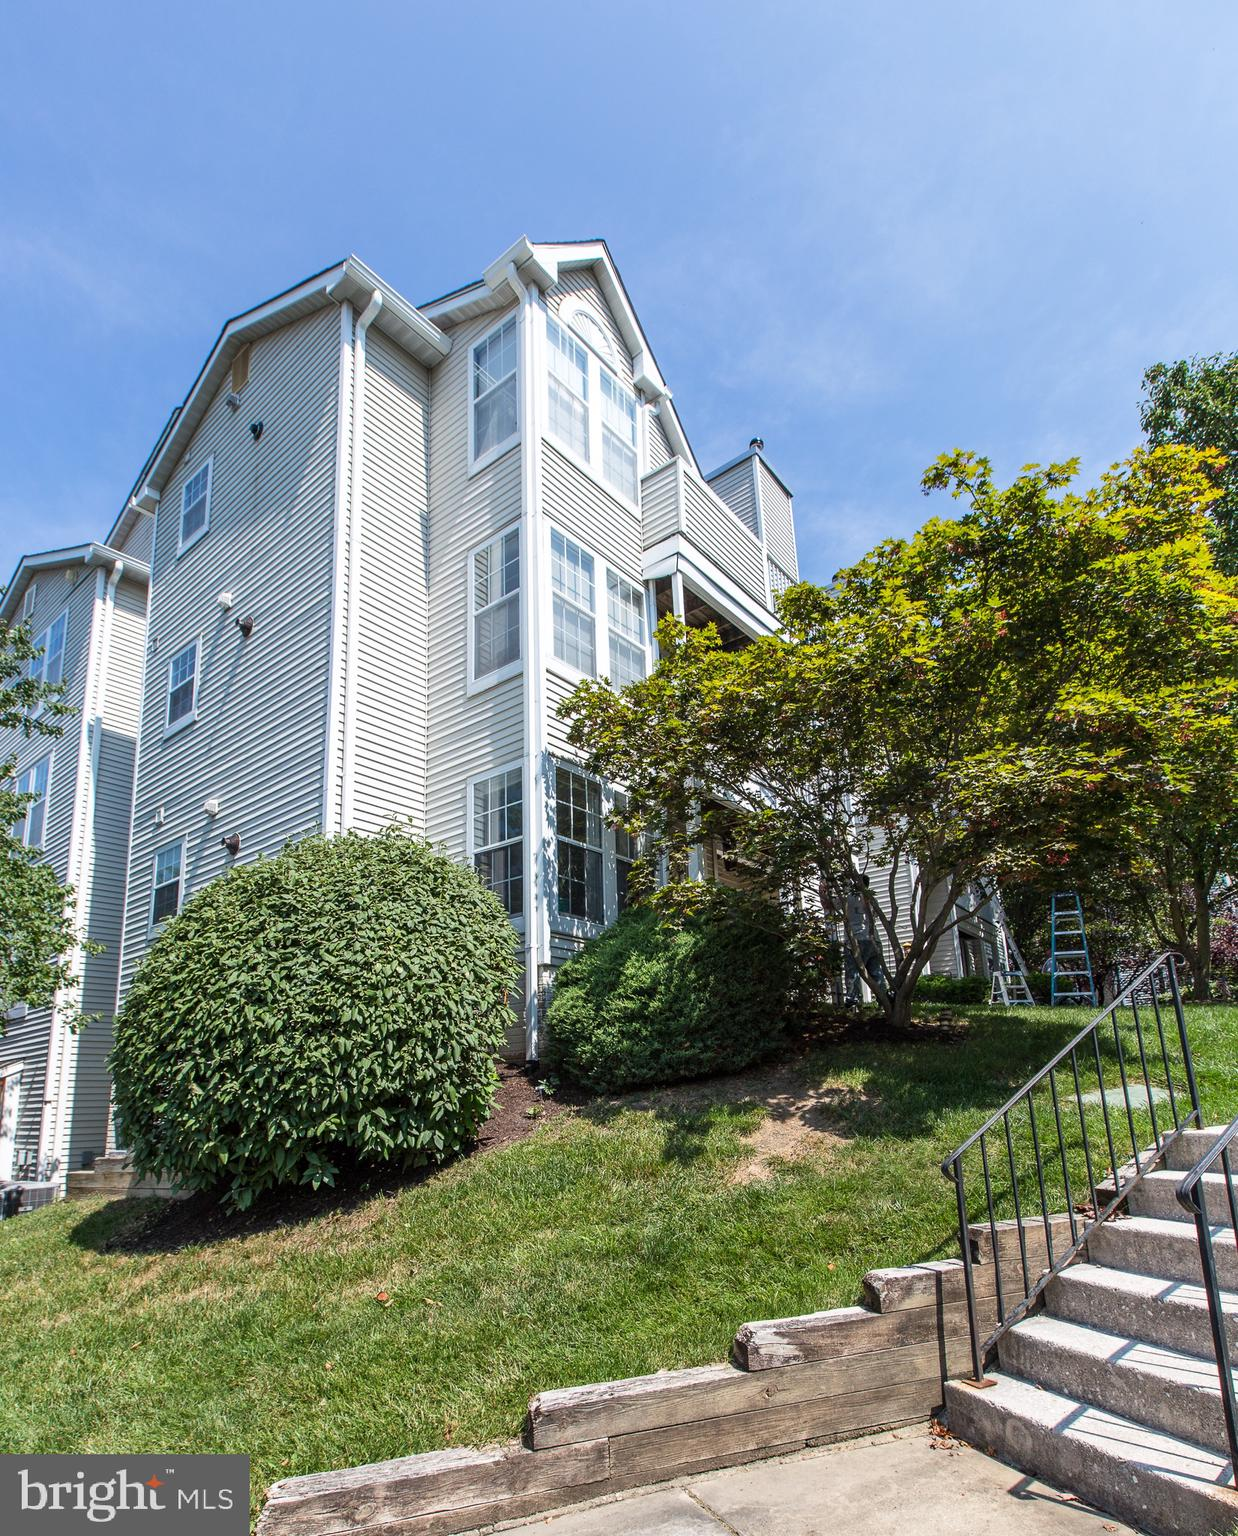 Welcome to this beautiful, well-maintained condo unit in the serene Elkridge neighborhood with ample